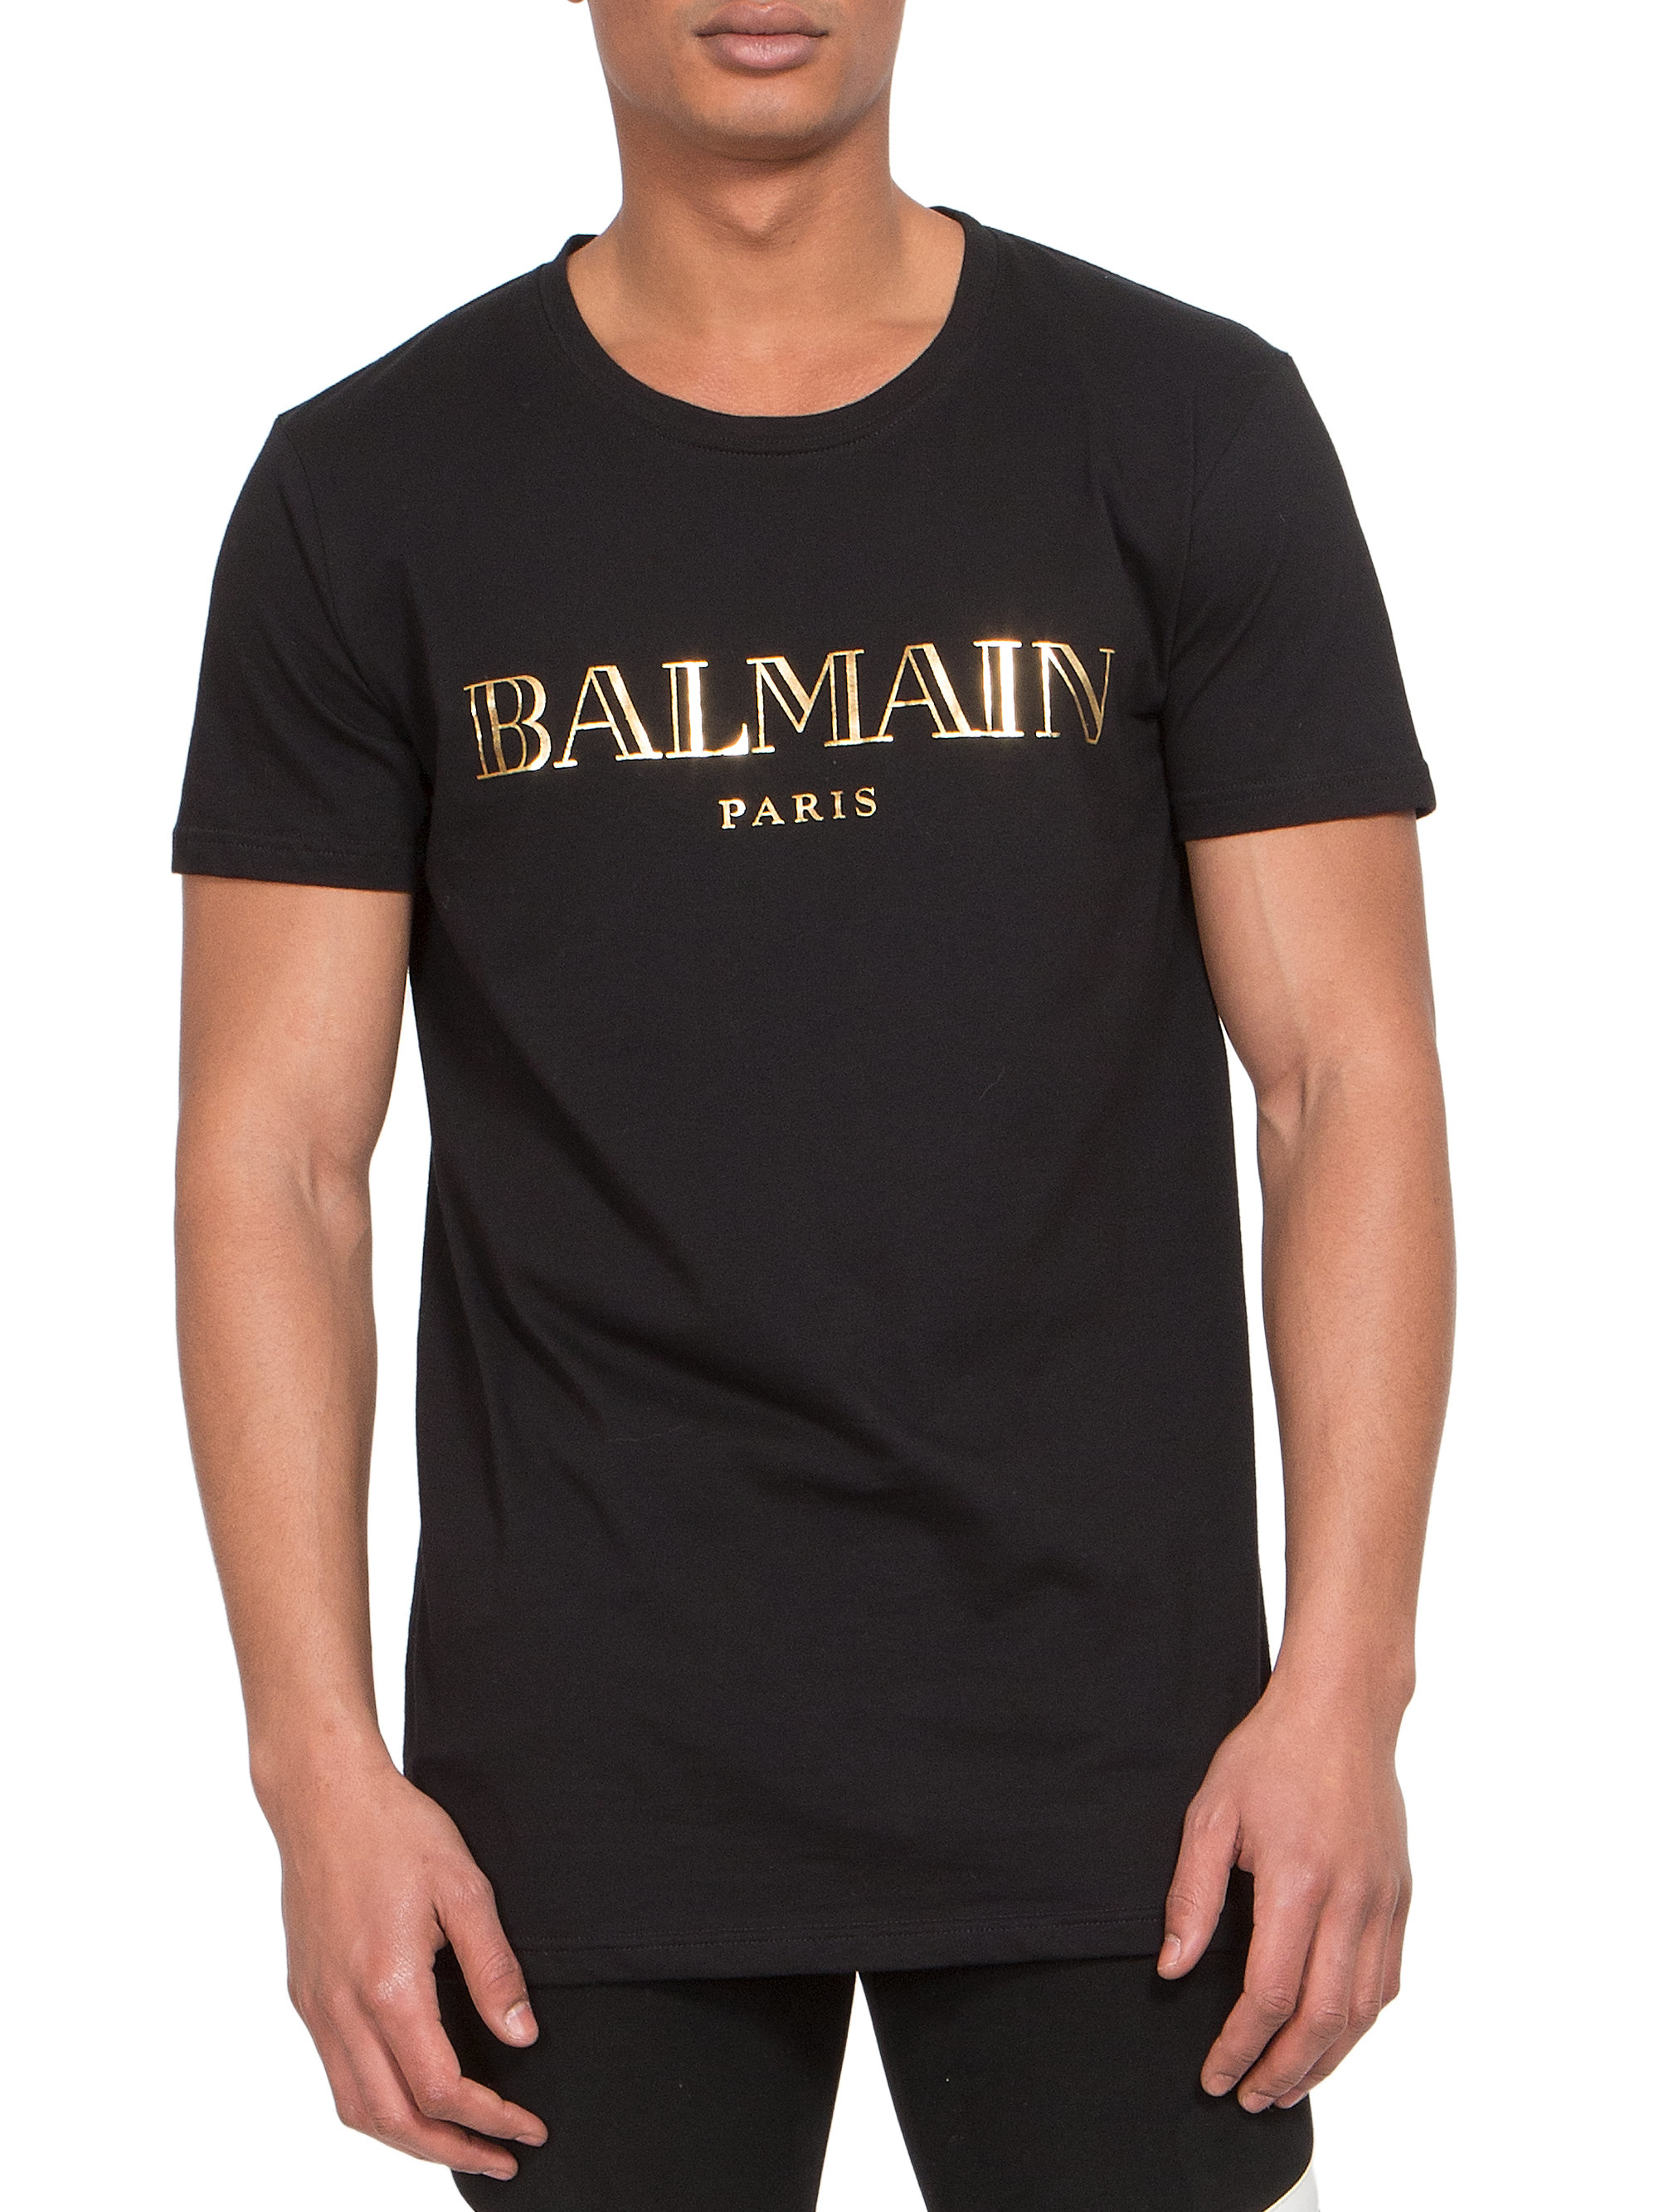 balmain logo print cotton jersey tee in black for men lyst. Black Bedroom Furniture Sets. Home Design Ideas